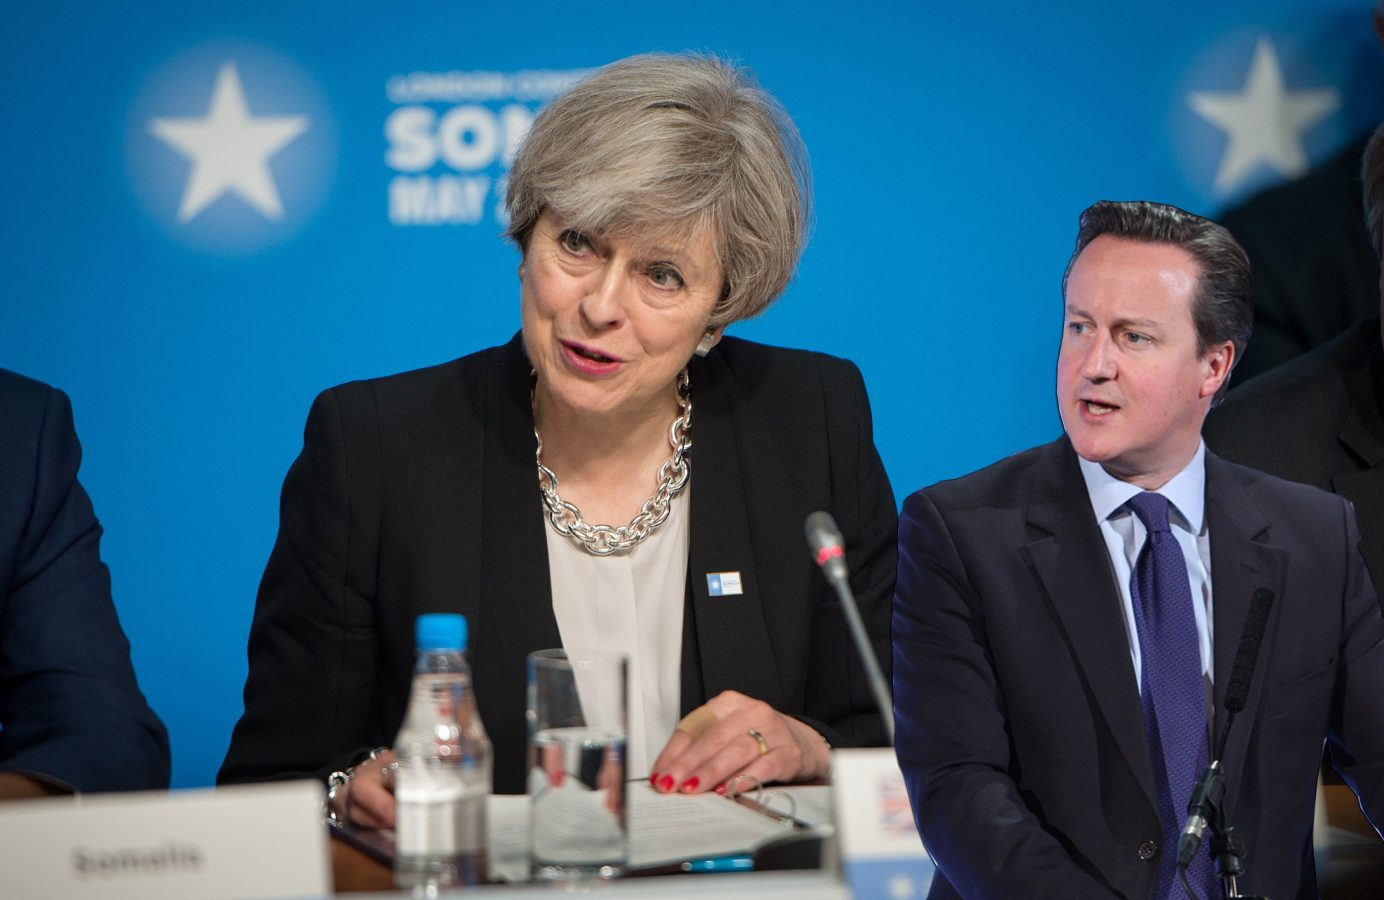 Theresa May is taking Brexit advice off David Cameron